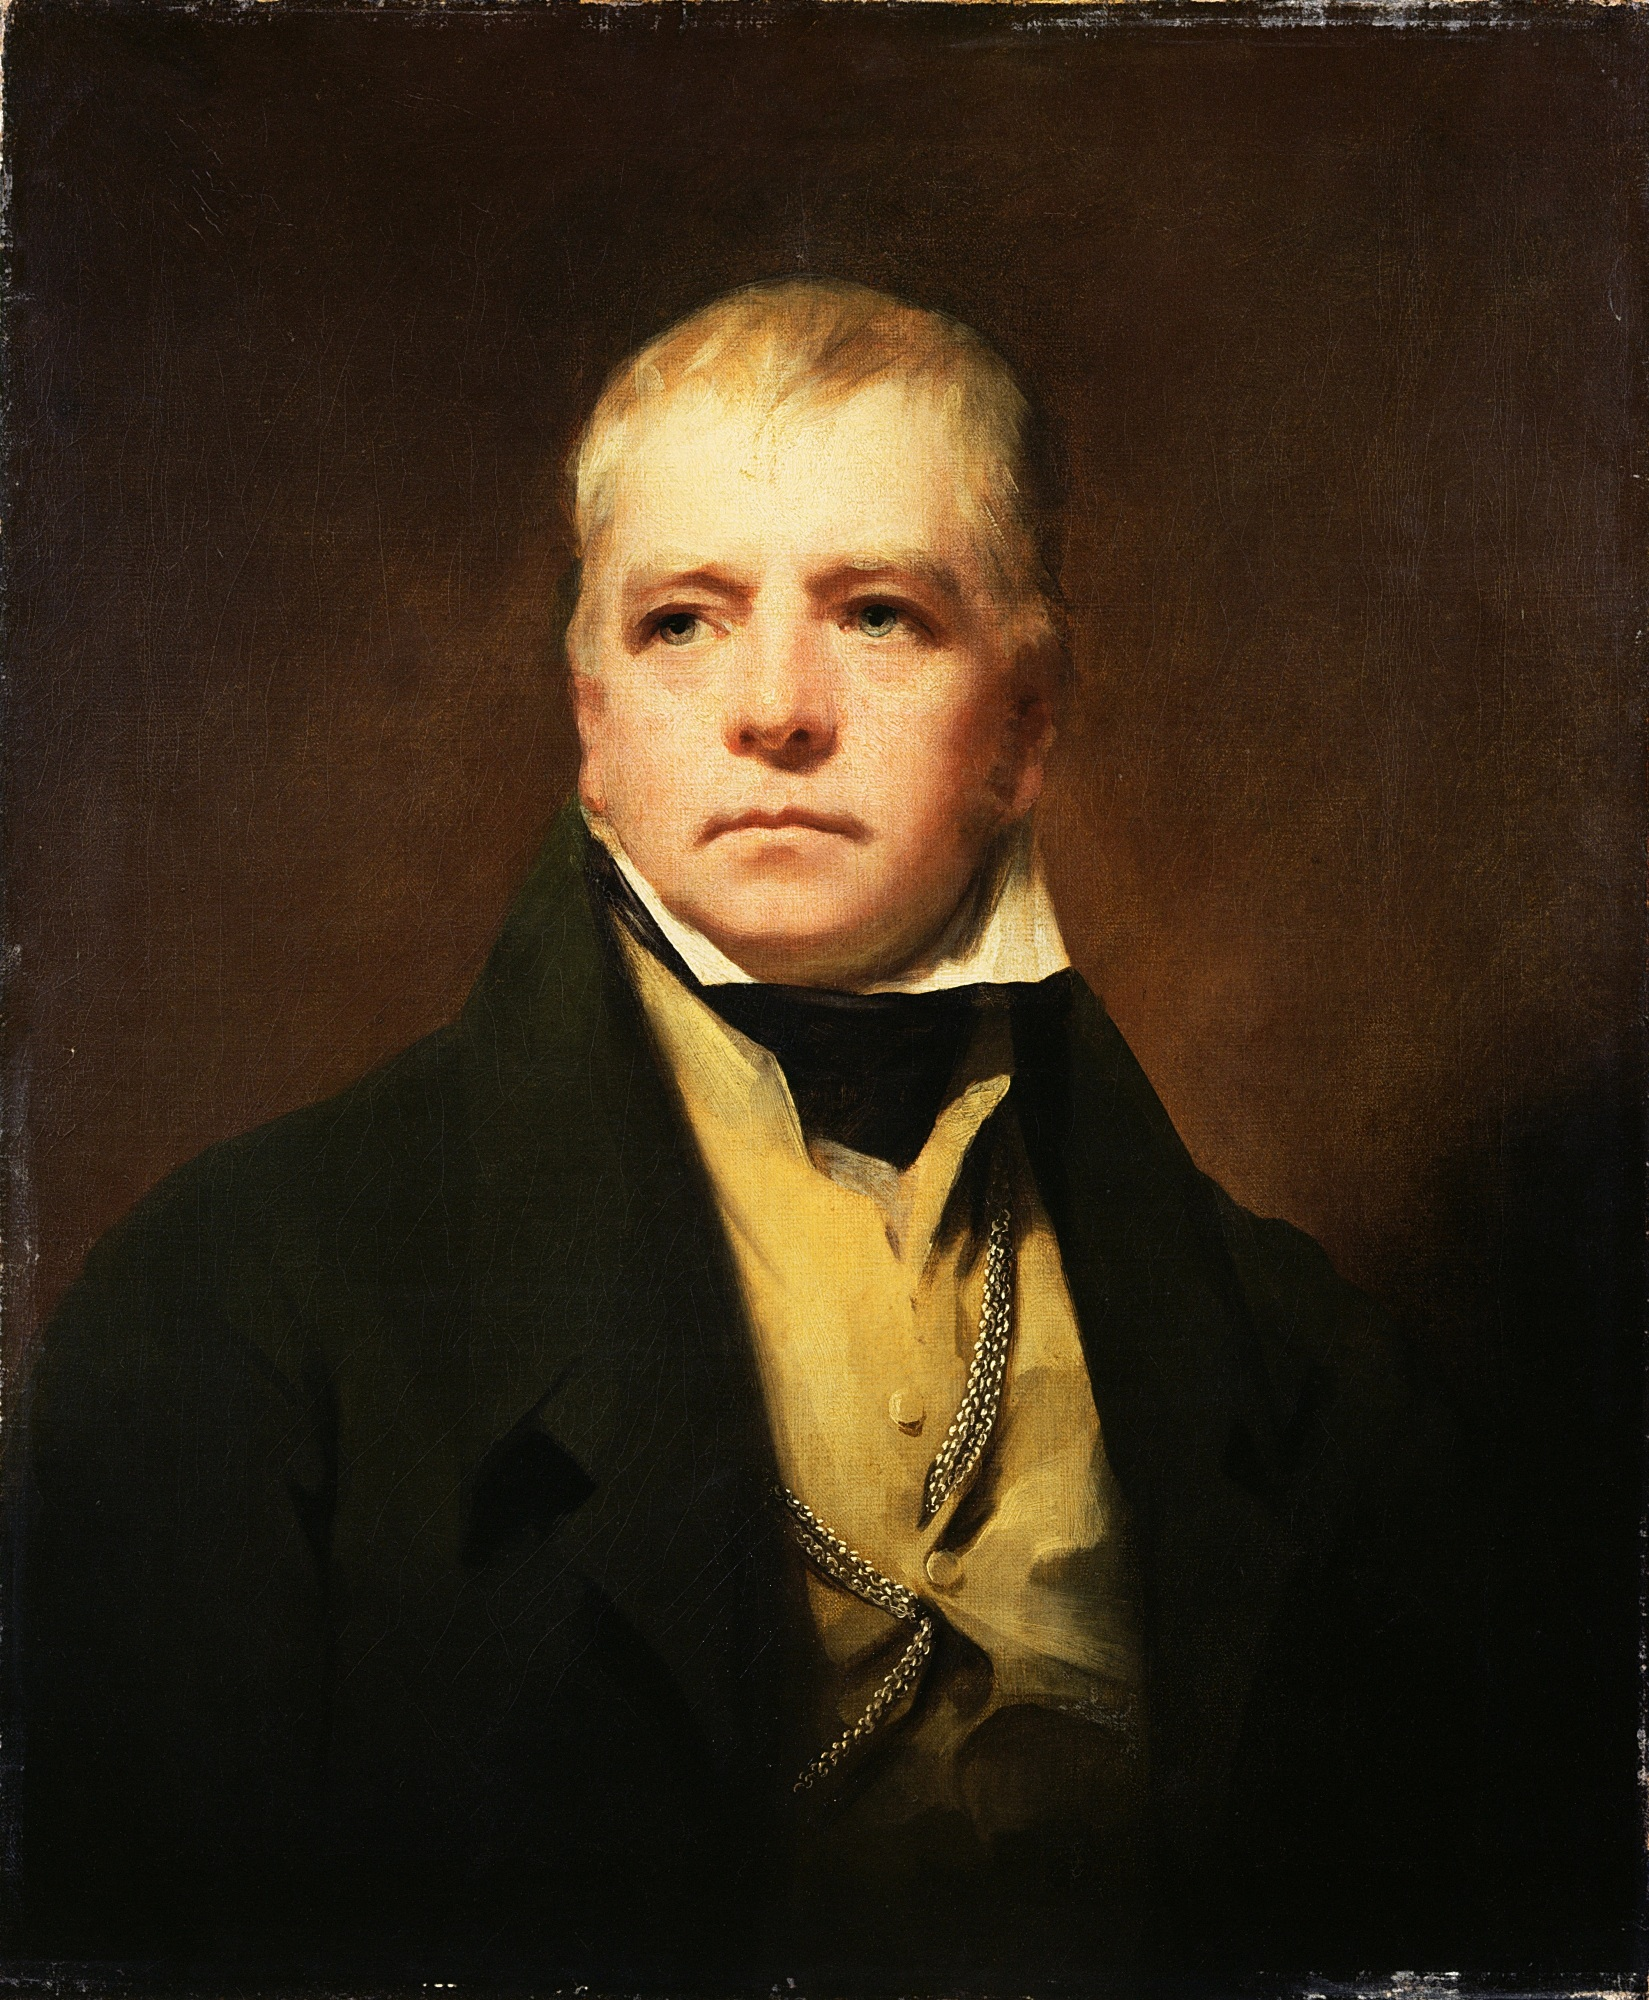 Portrait of Walter Scott